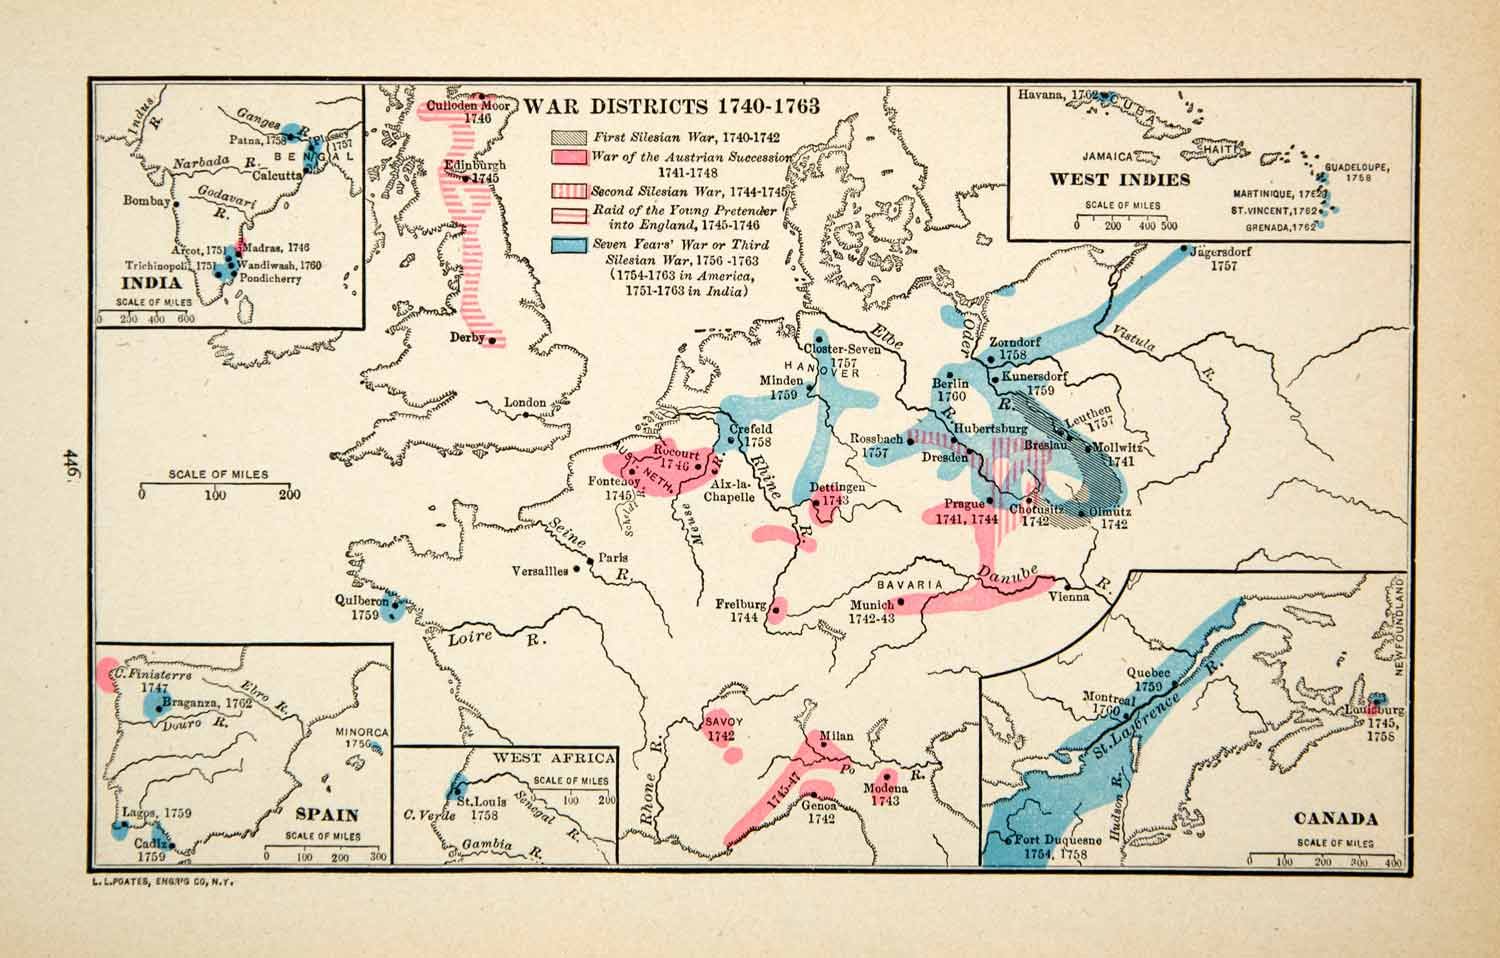 Districts Of France Map.1918 Print Map Europe War Districts England Germany France Silesian Xeca1